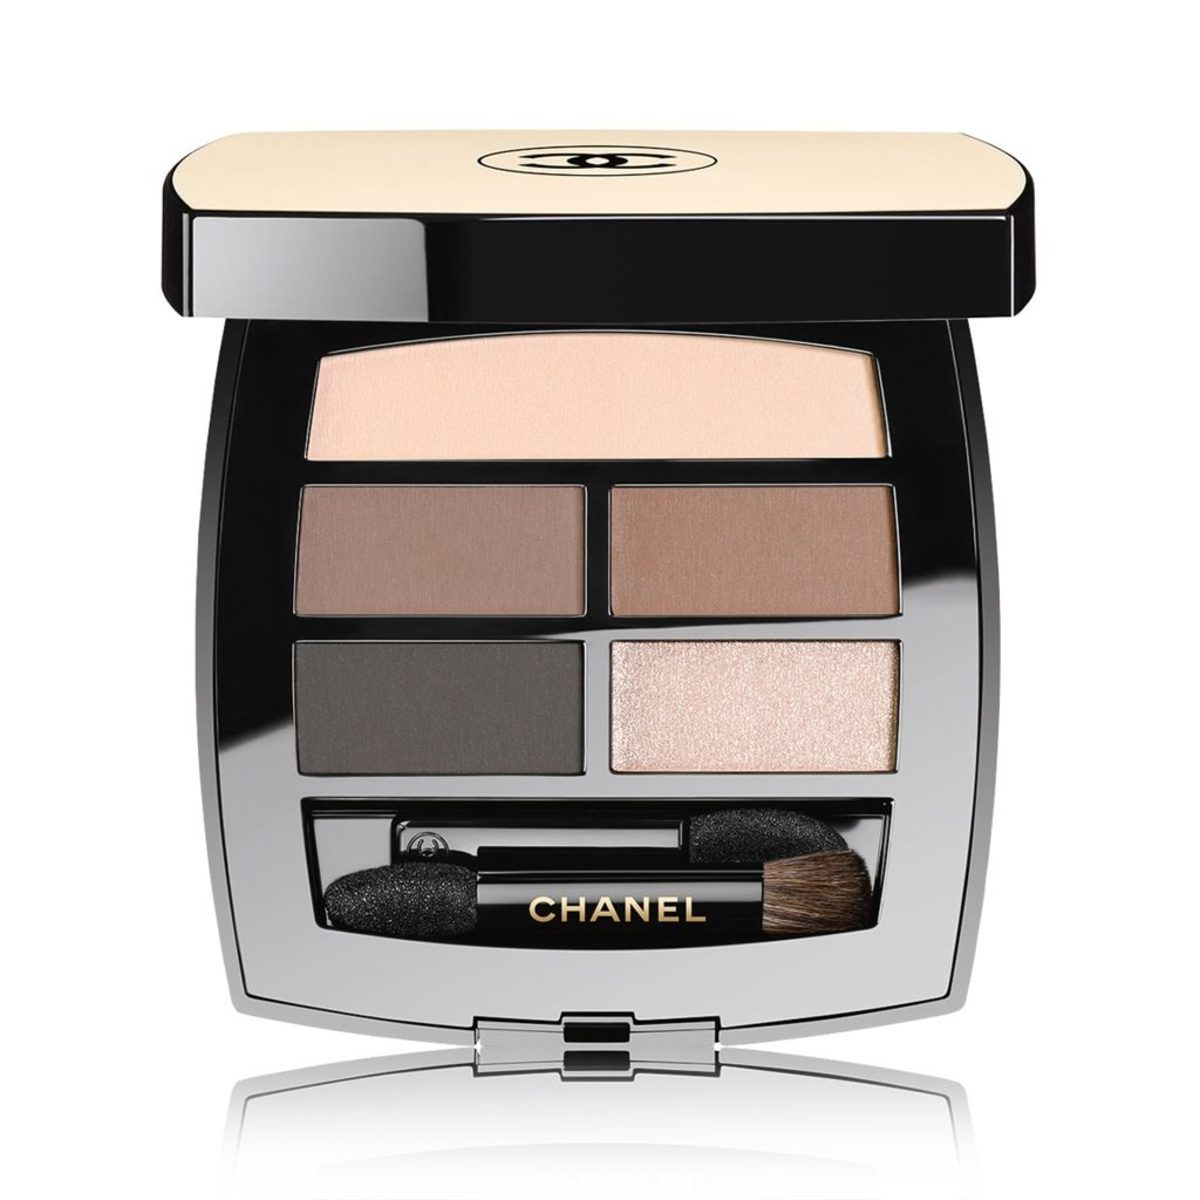 Chanel Les Beiges Healthy Glow Natural Eyeshadow Palette: launching in North America in July 2017